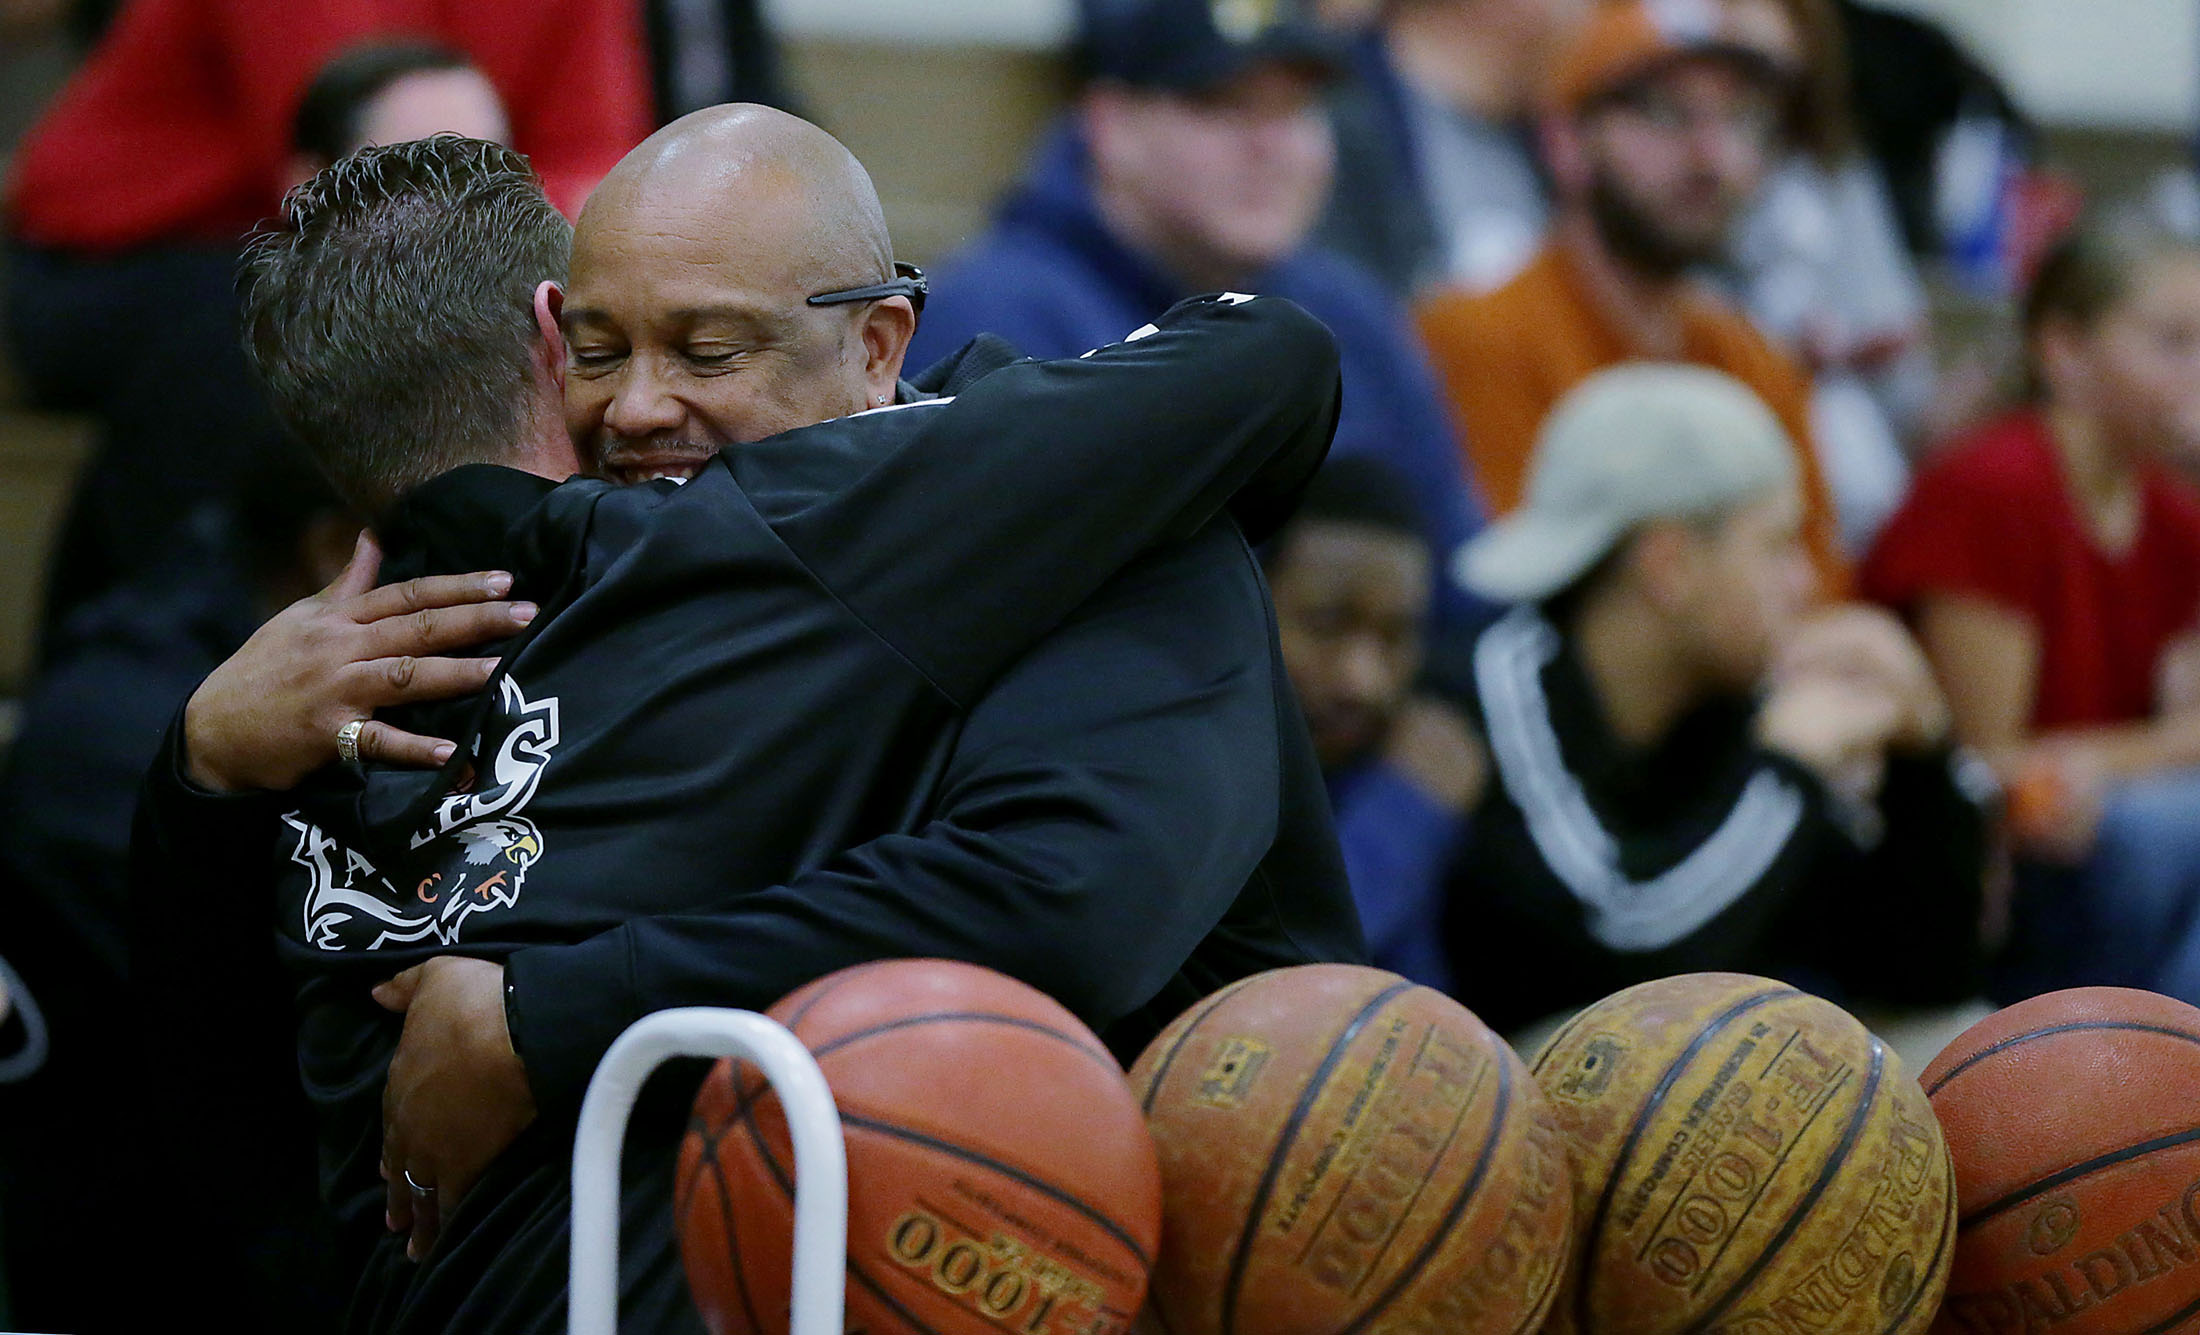 La Sierra boys basketball coach Justin Norman got hugs all night long from fans and supporters after his wife, Meagan, who's sudden death 10 days ago shocked the La Sierra sporting family in Riverside on Friday, January 11, 2019.